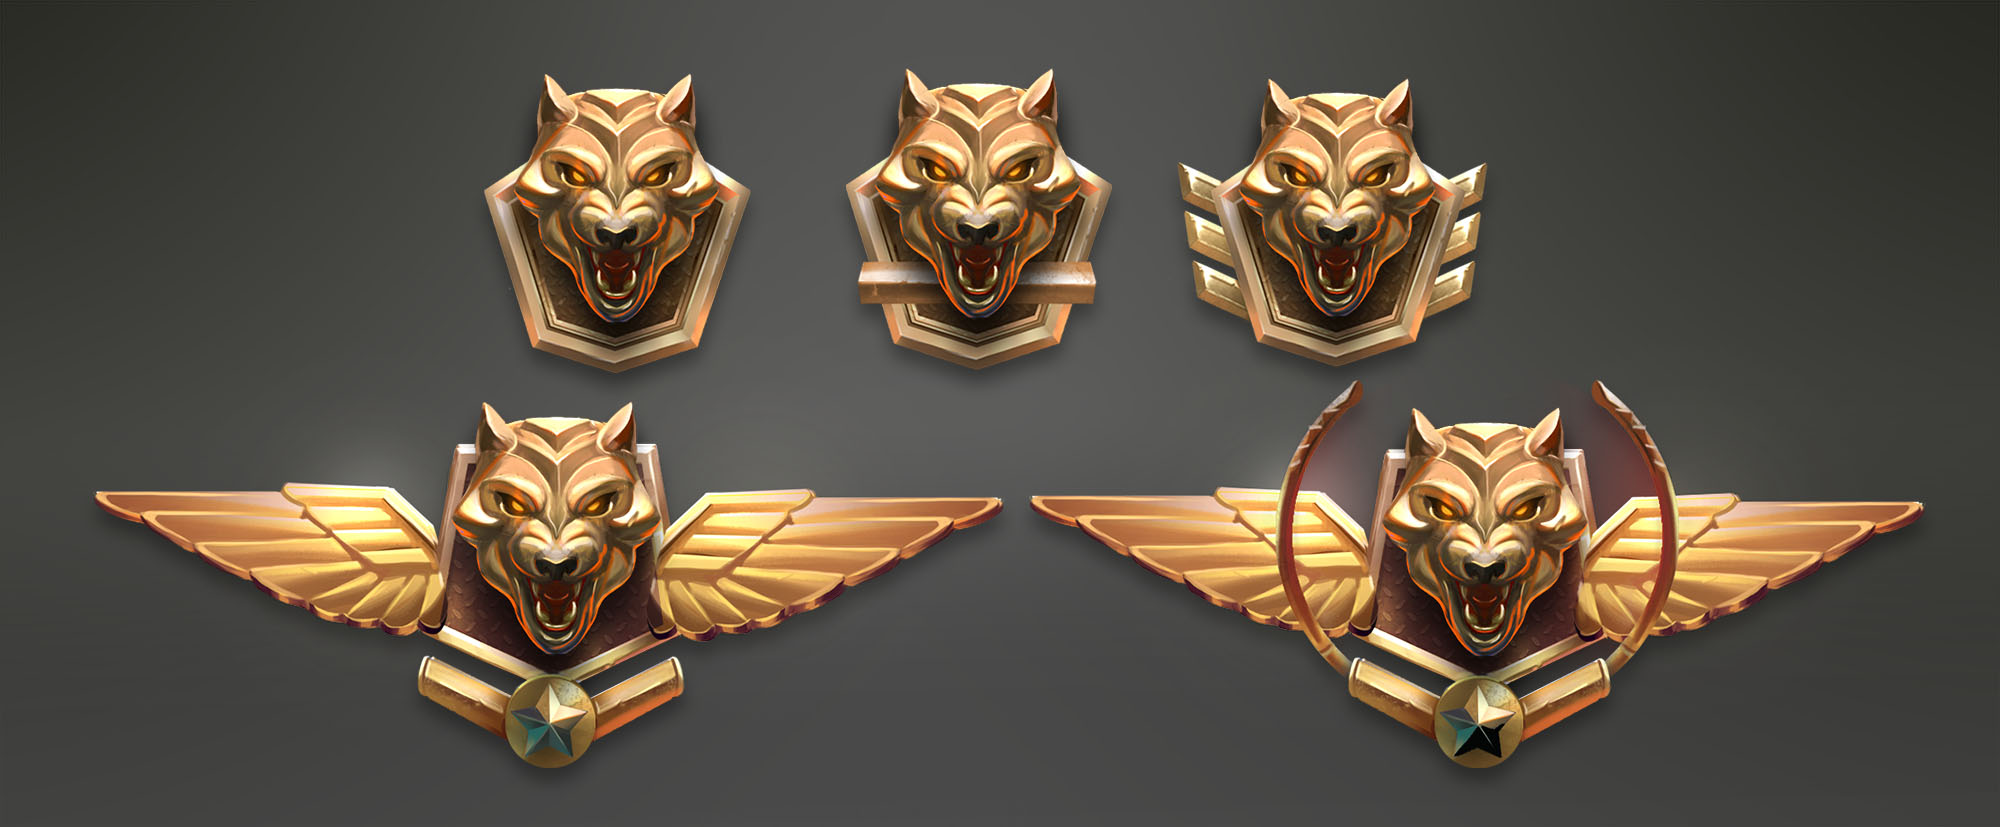 Drone_Icons_wolf.jpg